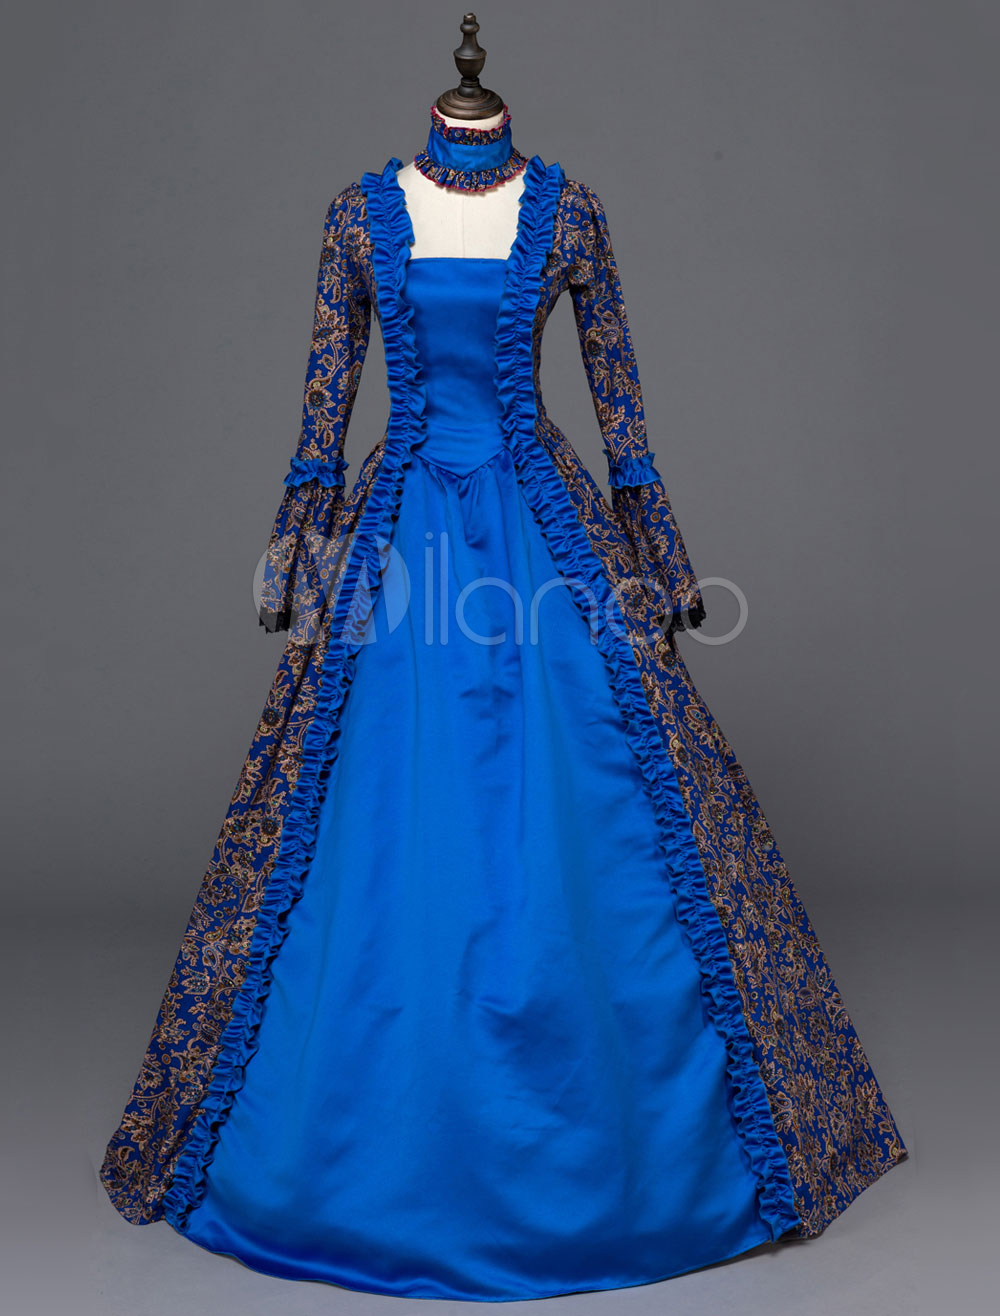 Buy Women's Gothic Costume Royal Blue Lace Up Ruffles Square Neck Long Sleeve Patchwork Royal Long Dresses Halloween for $149.99 in Milanoo store